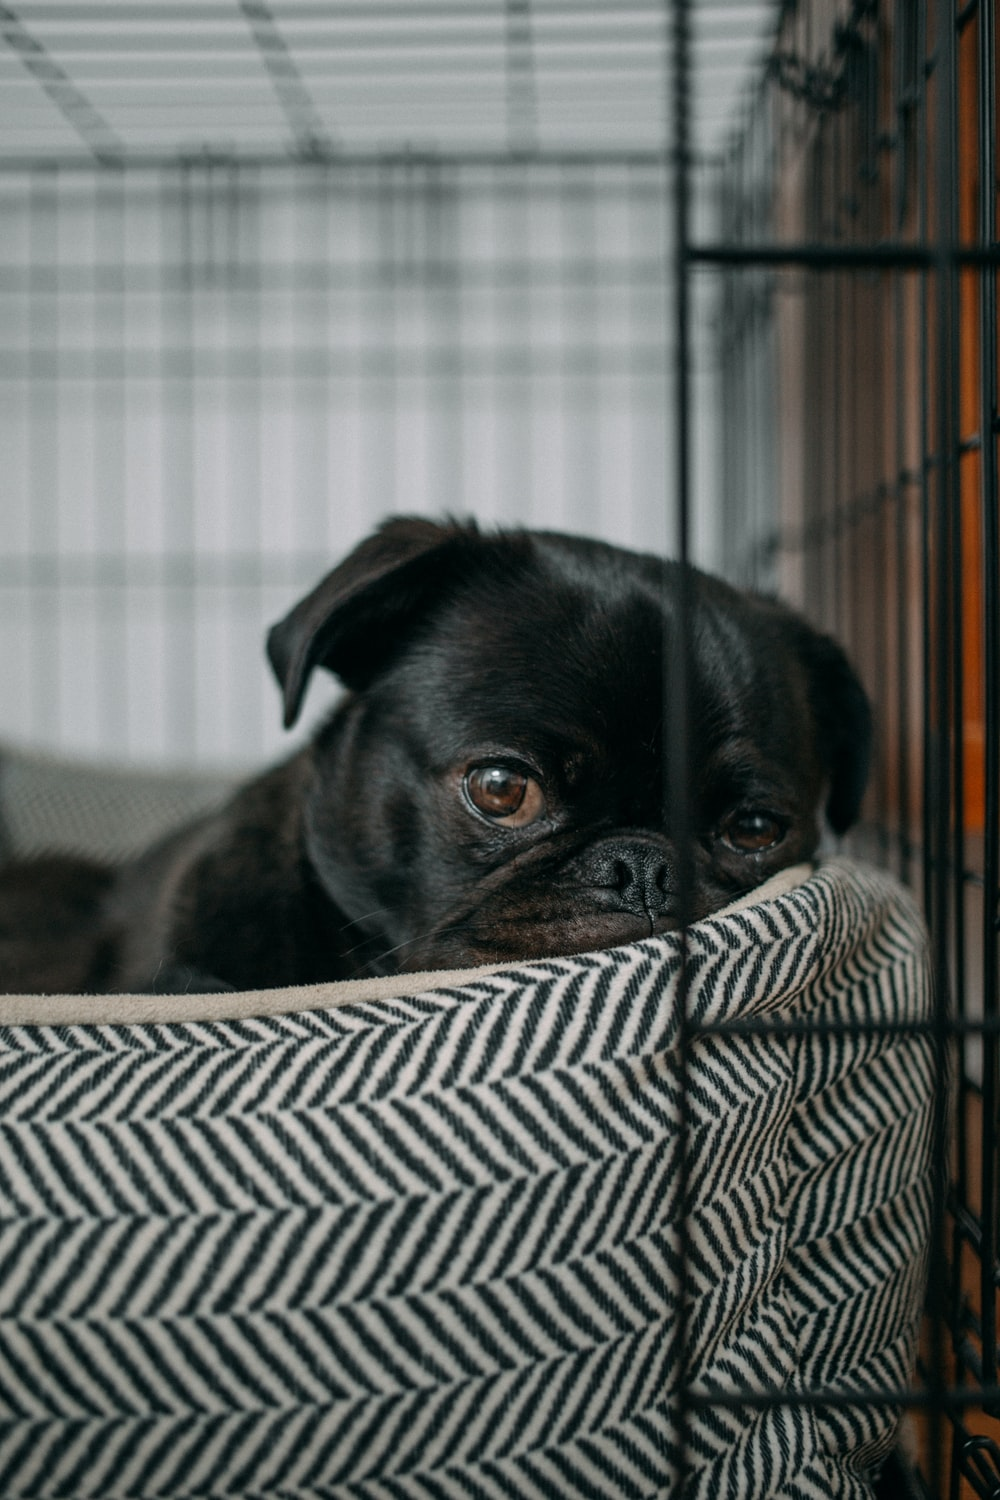 pet sitting pictures download free images on unsplash